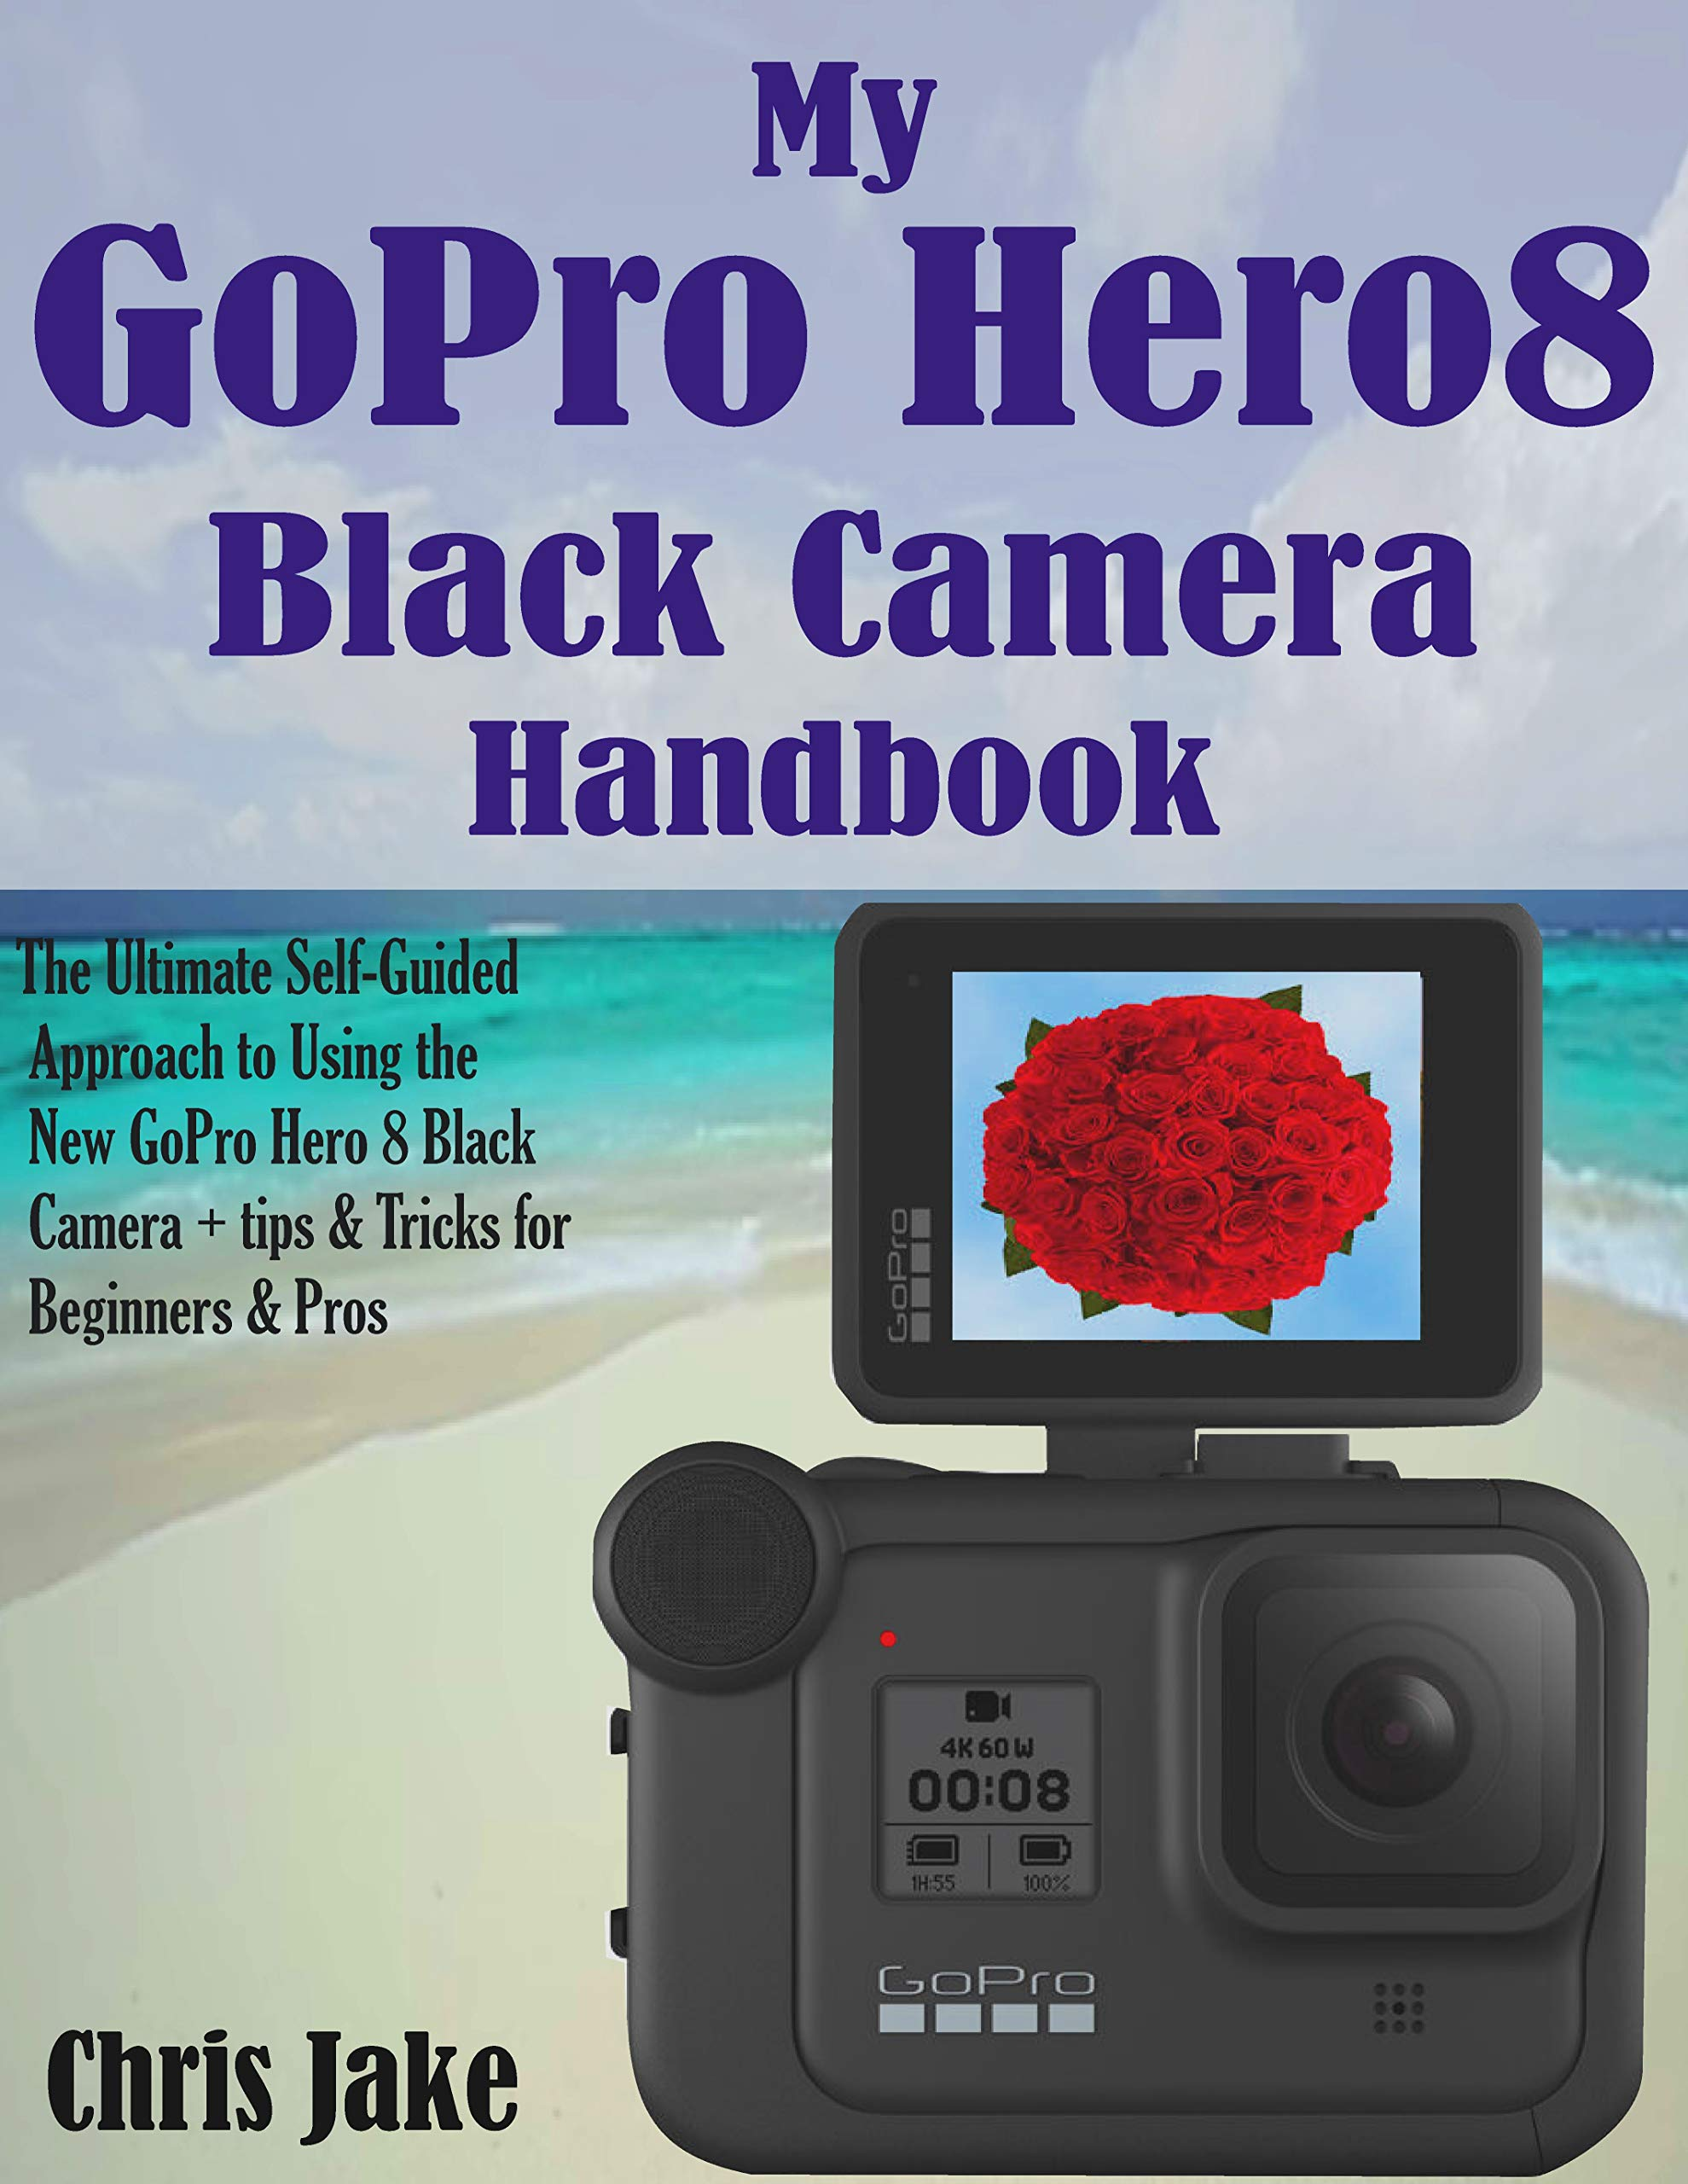 My GoPro Hero8 Black Camera Handbook: The Ultimate Self-Guided Approach To Using The New GoPro Hero 8 Black Camera + Tips ...